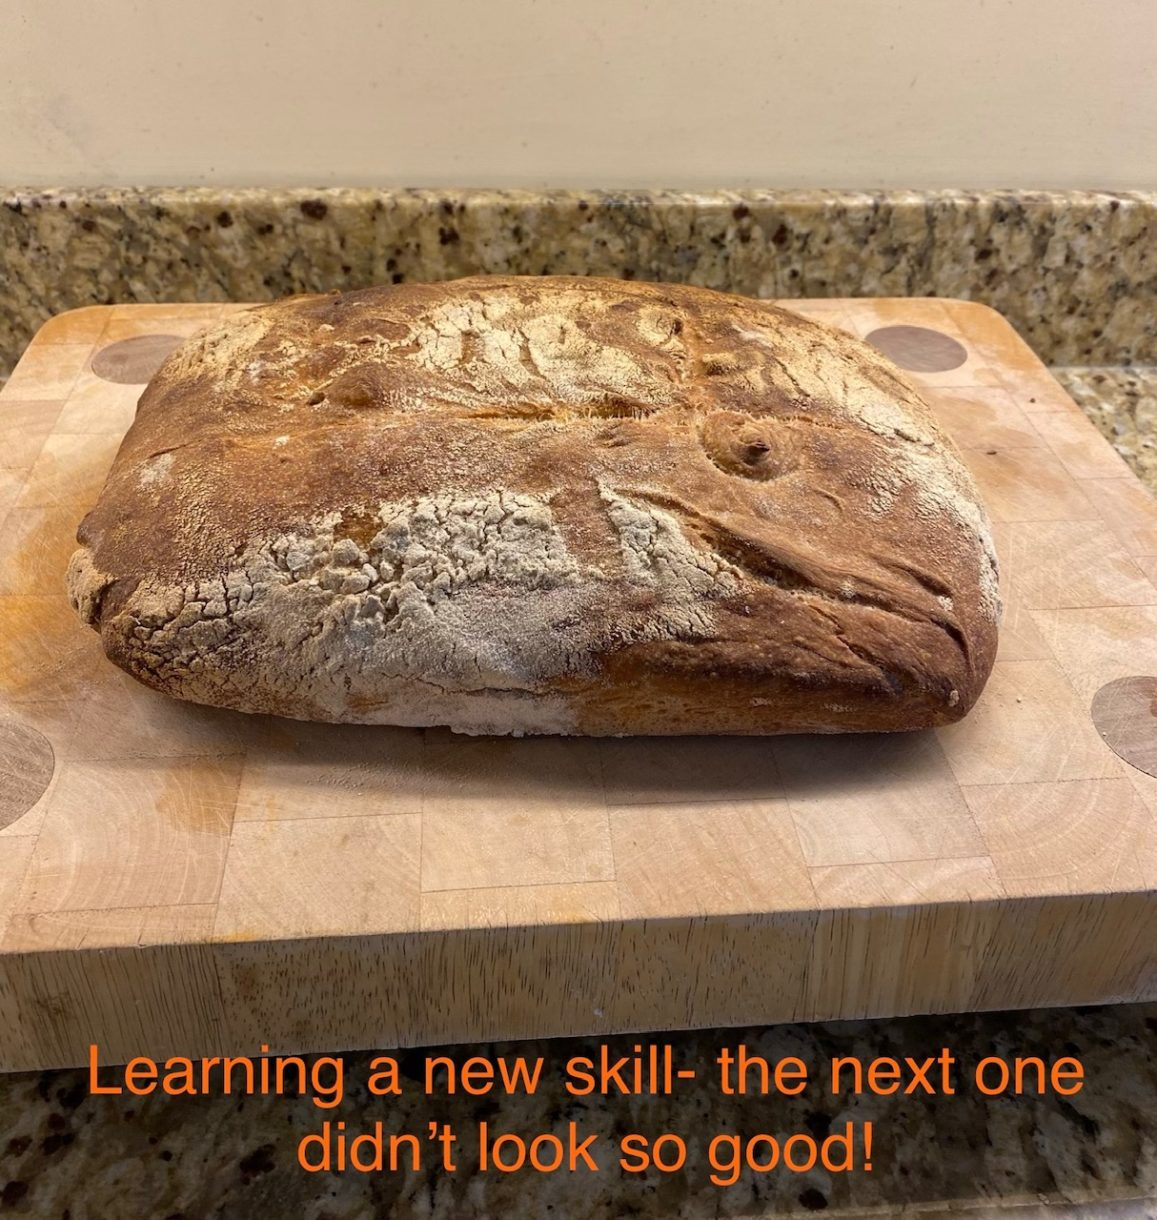 Ralph Metson - Learning a new skill - the next one didnt look so good